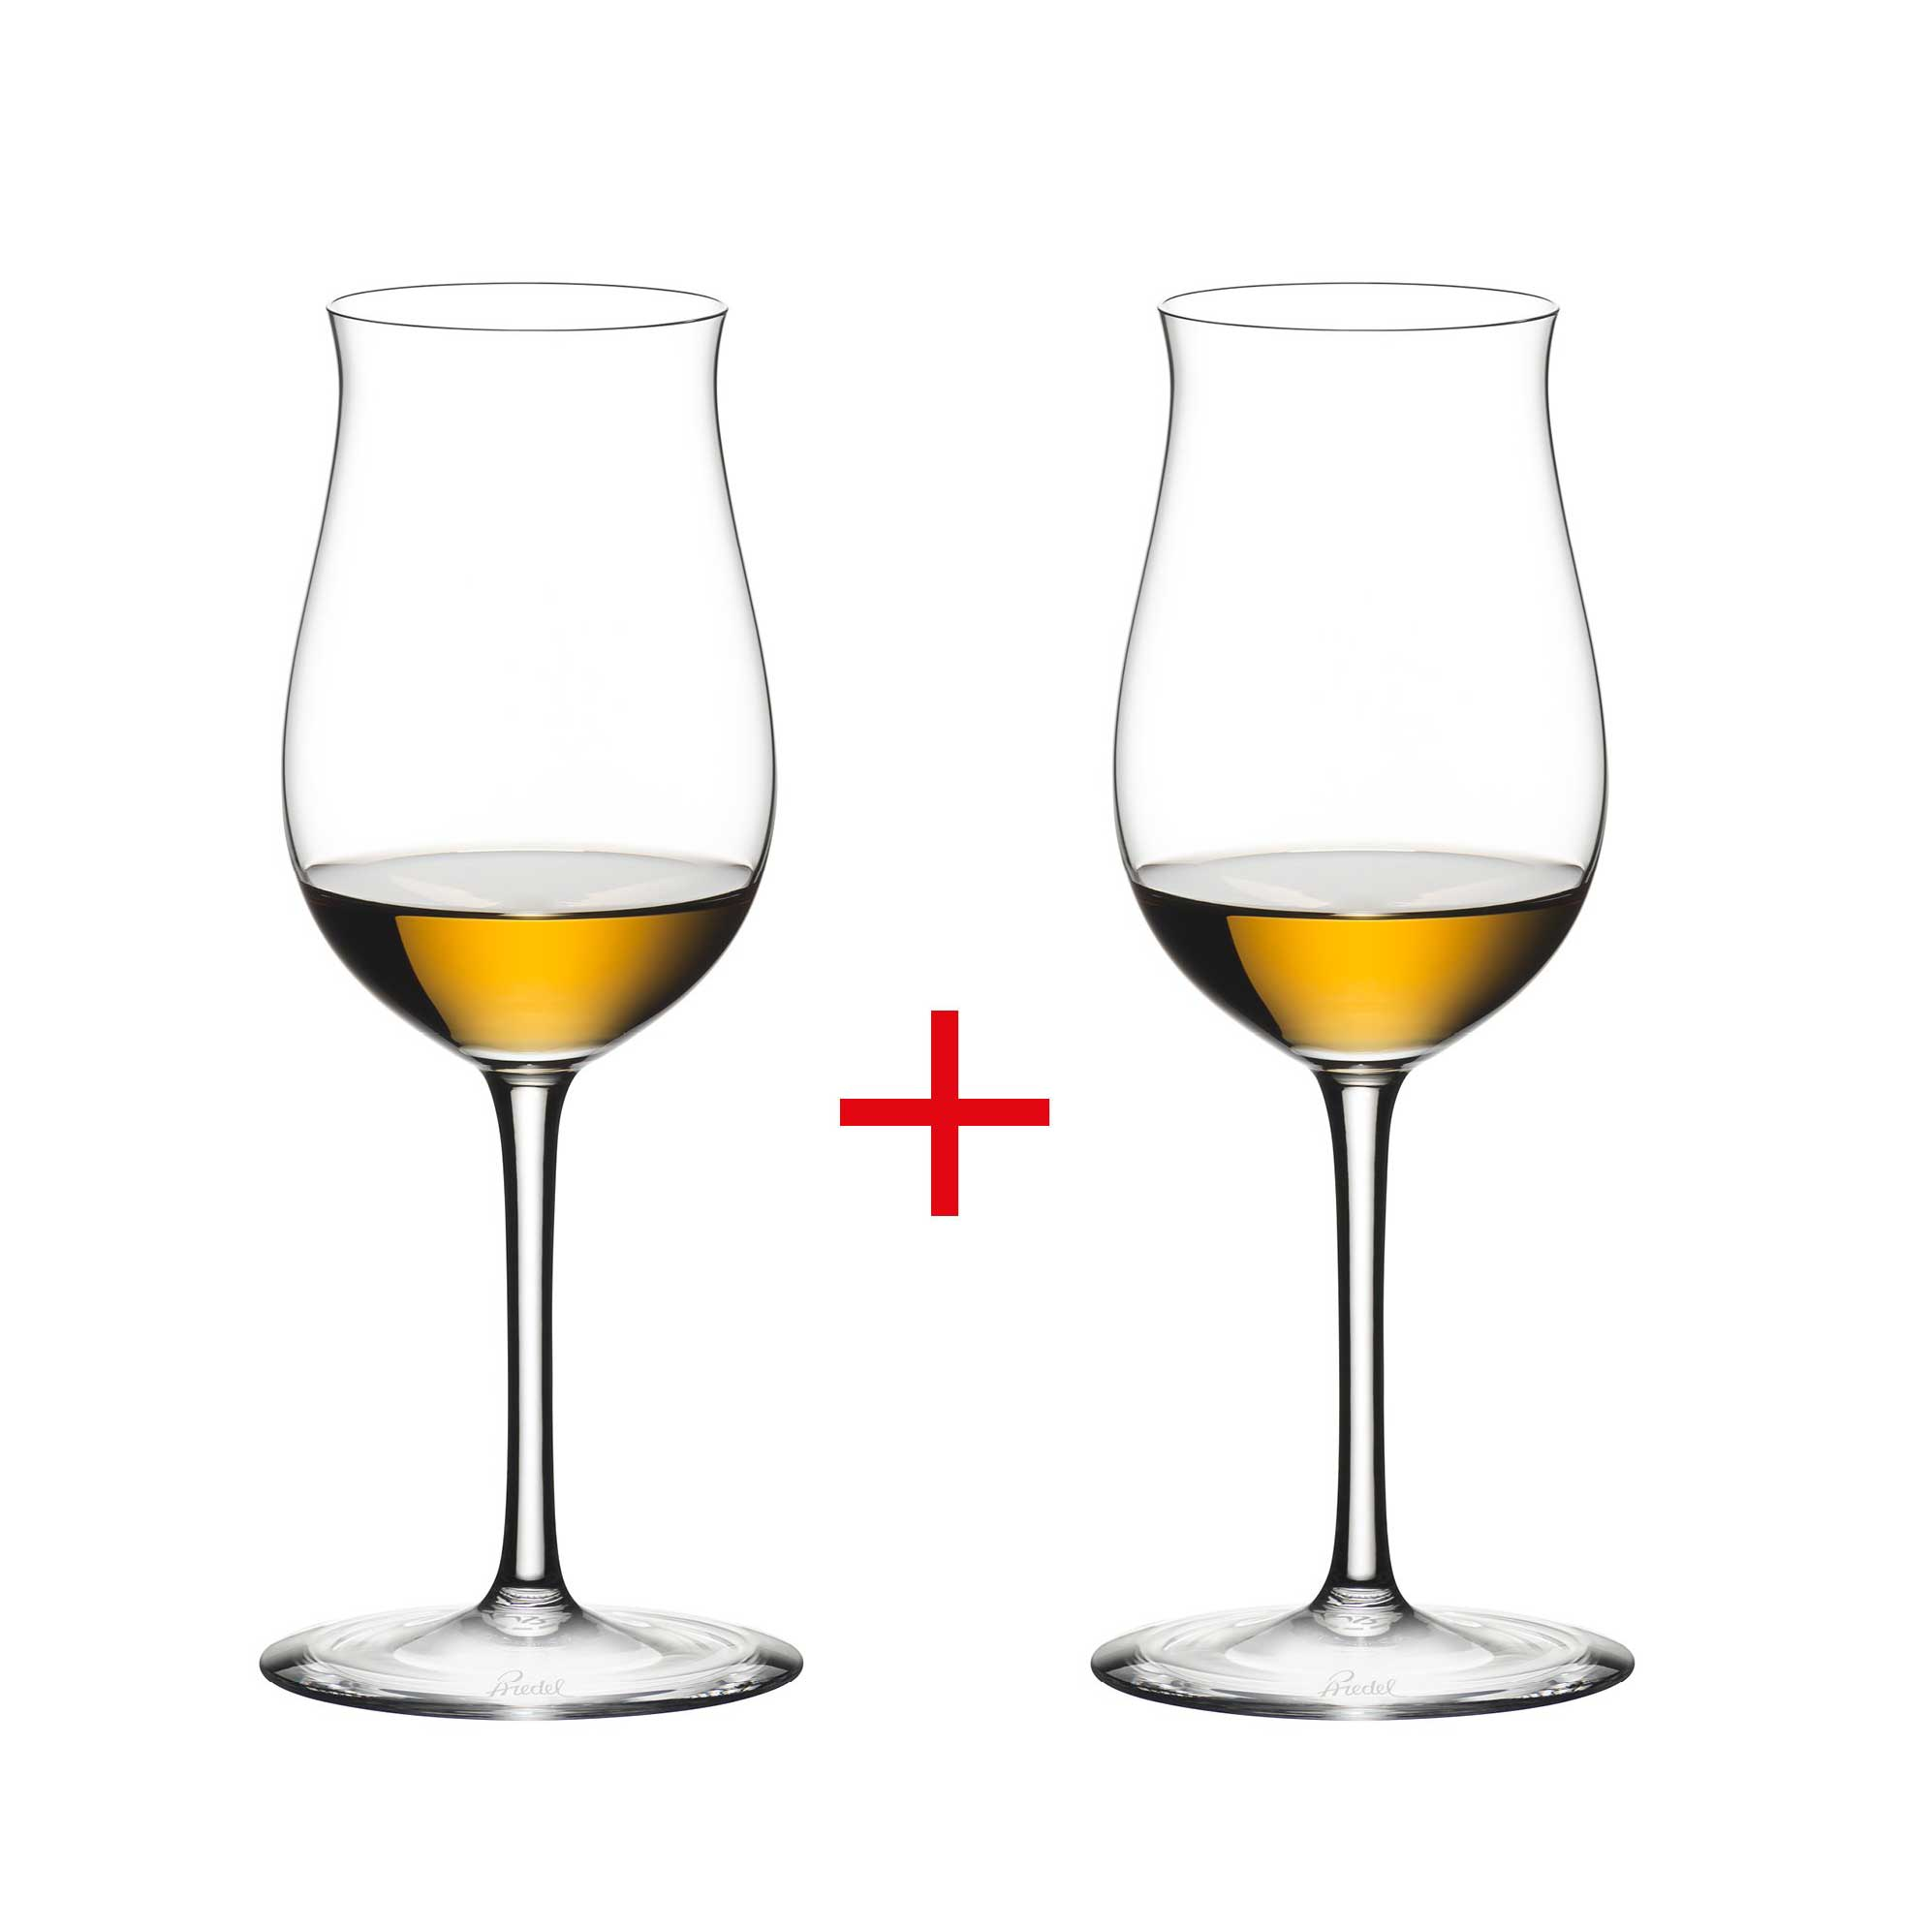 2440/71 Cognac VSOP - Set of 2 - Click Image to Close